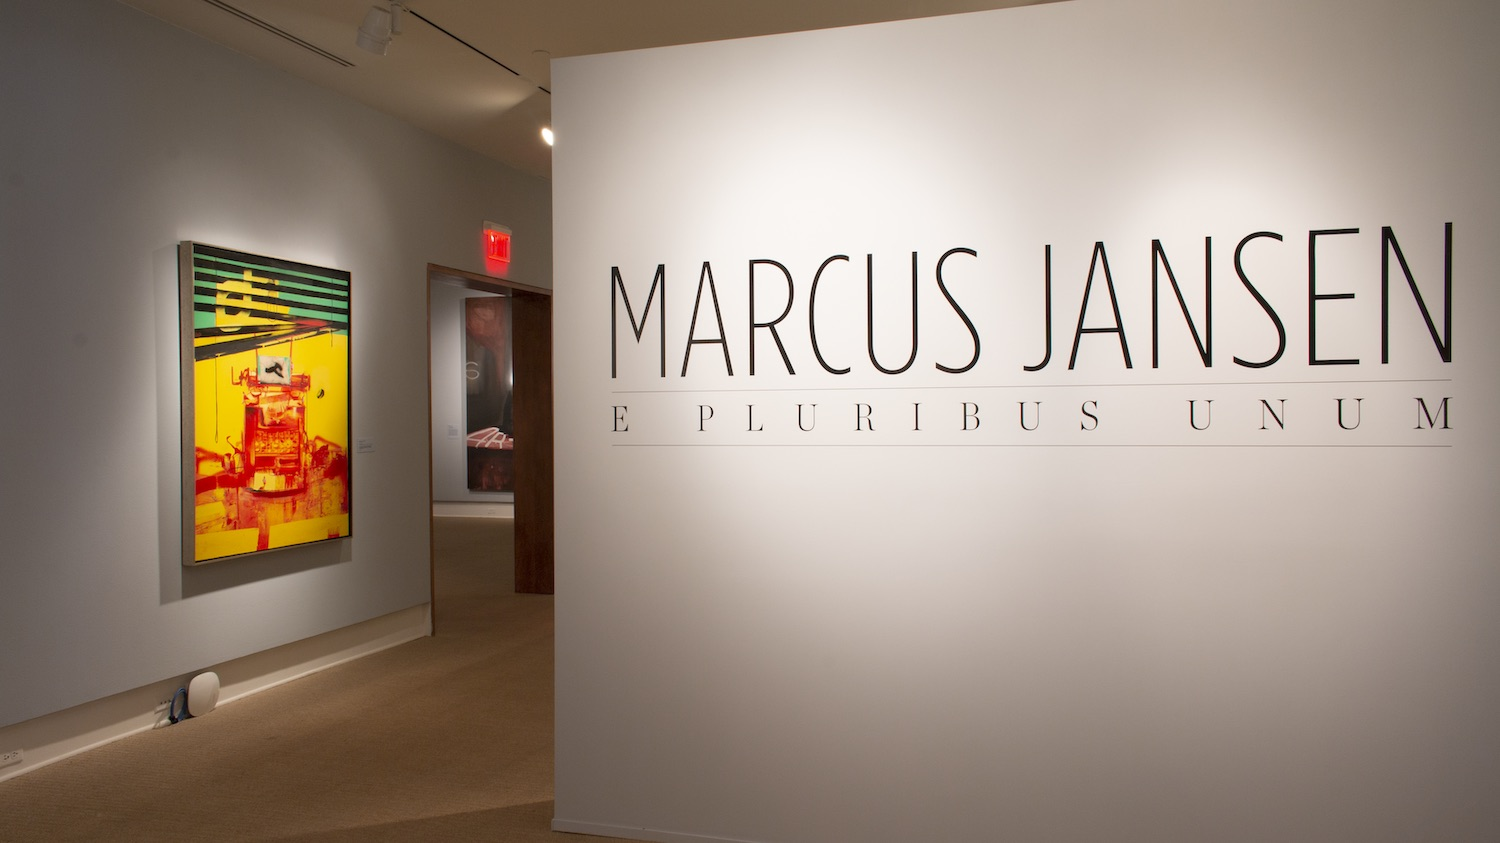 Installation view of Marcus Jansen: E Pluribus Unum exhibition at the Cornell Fine Arts Museum at Rollins College.